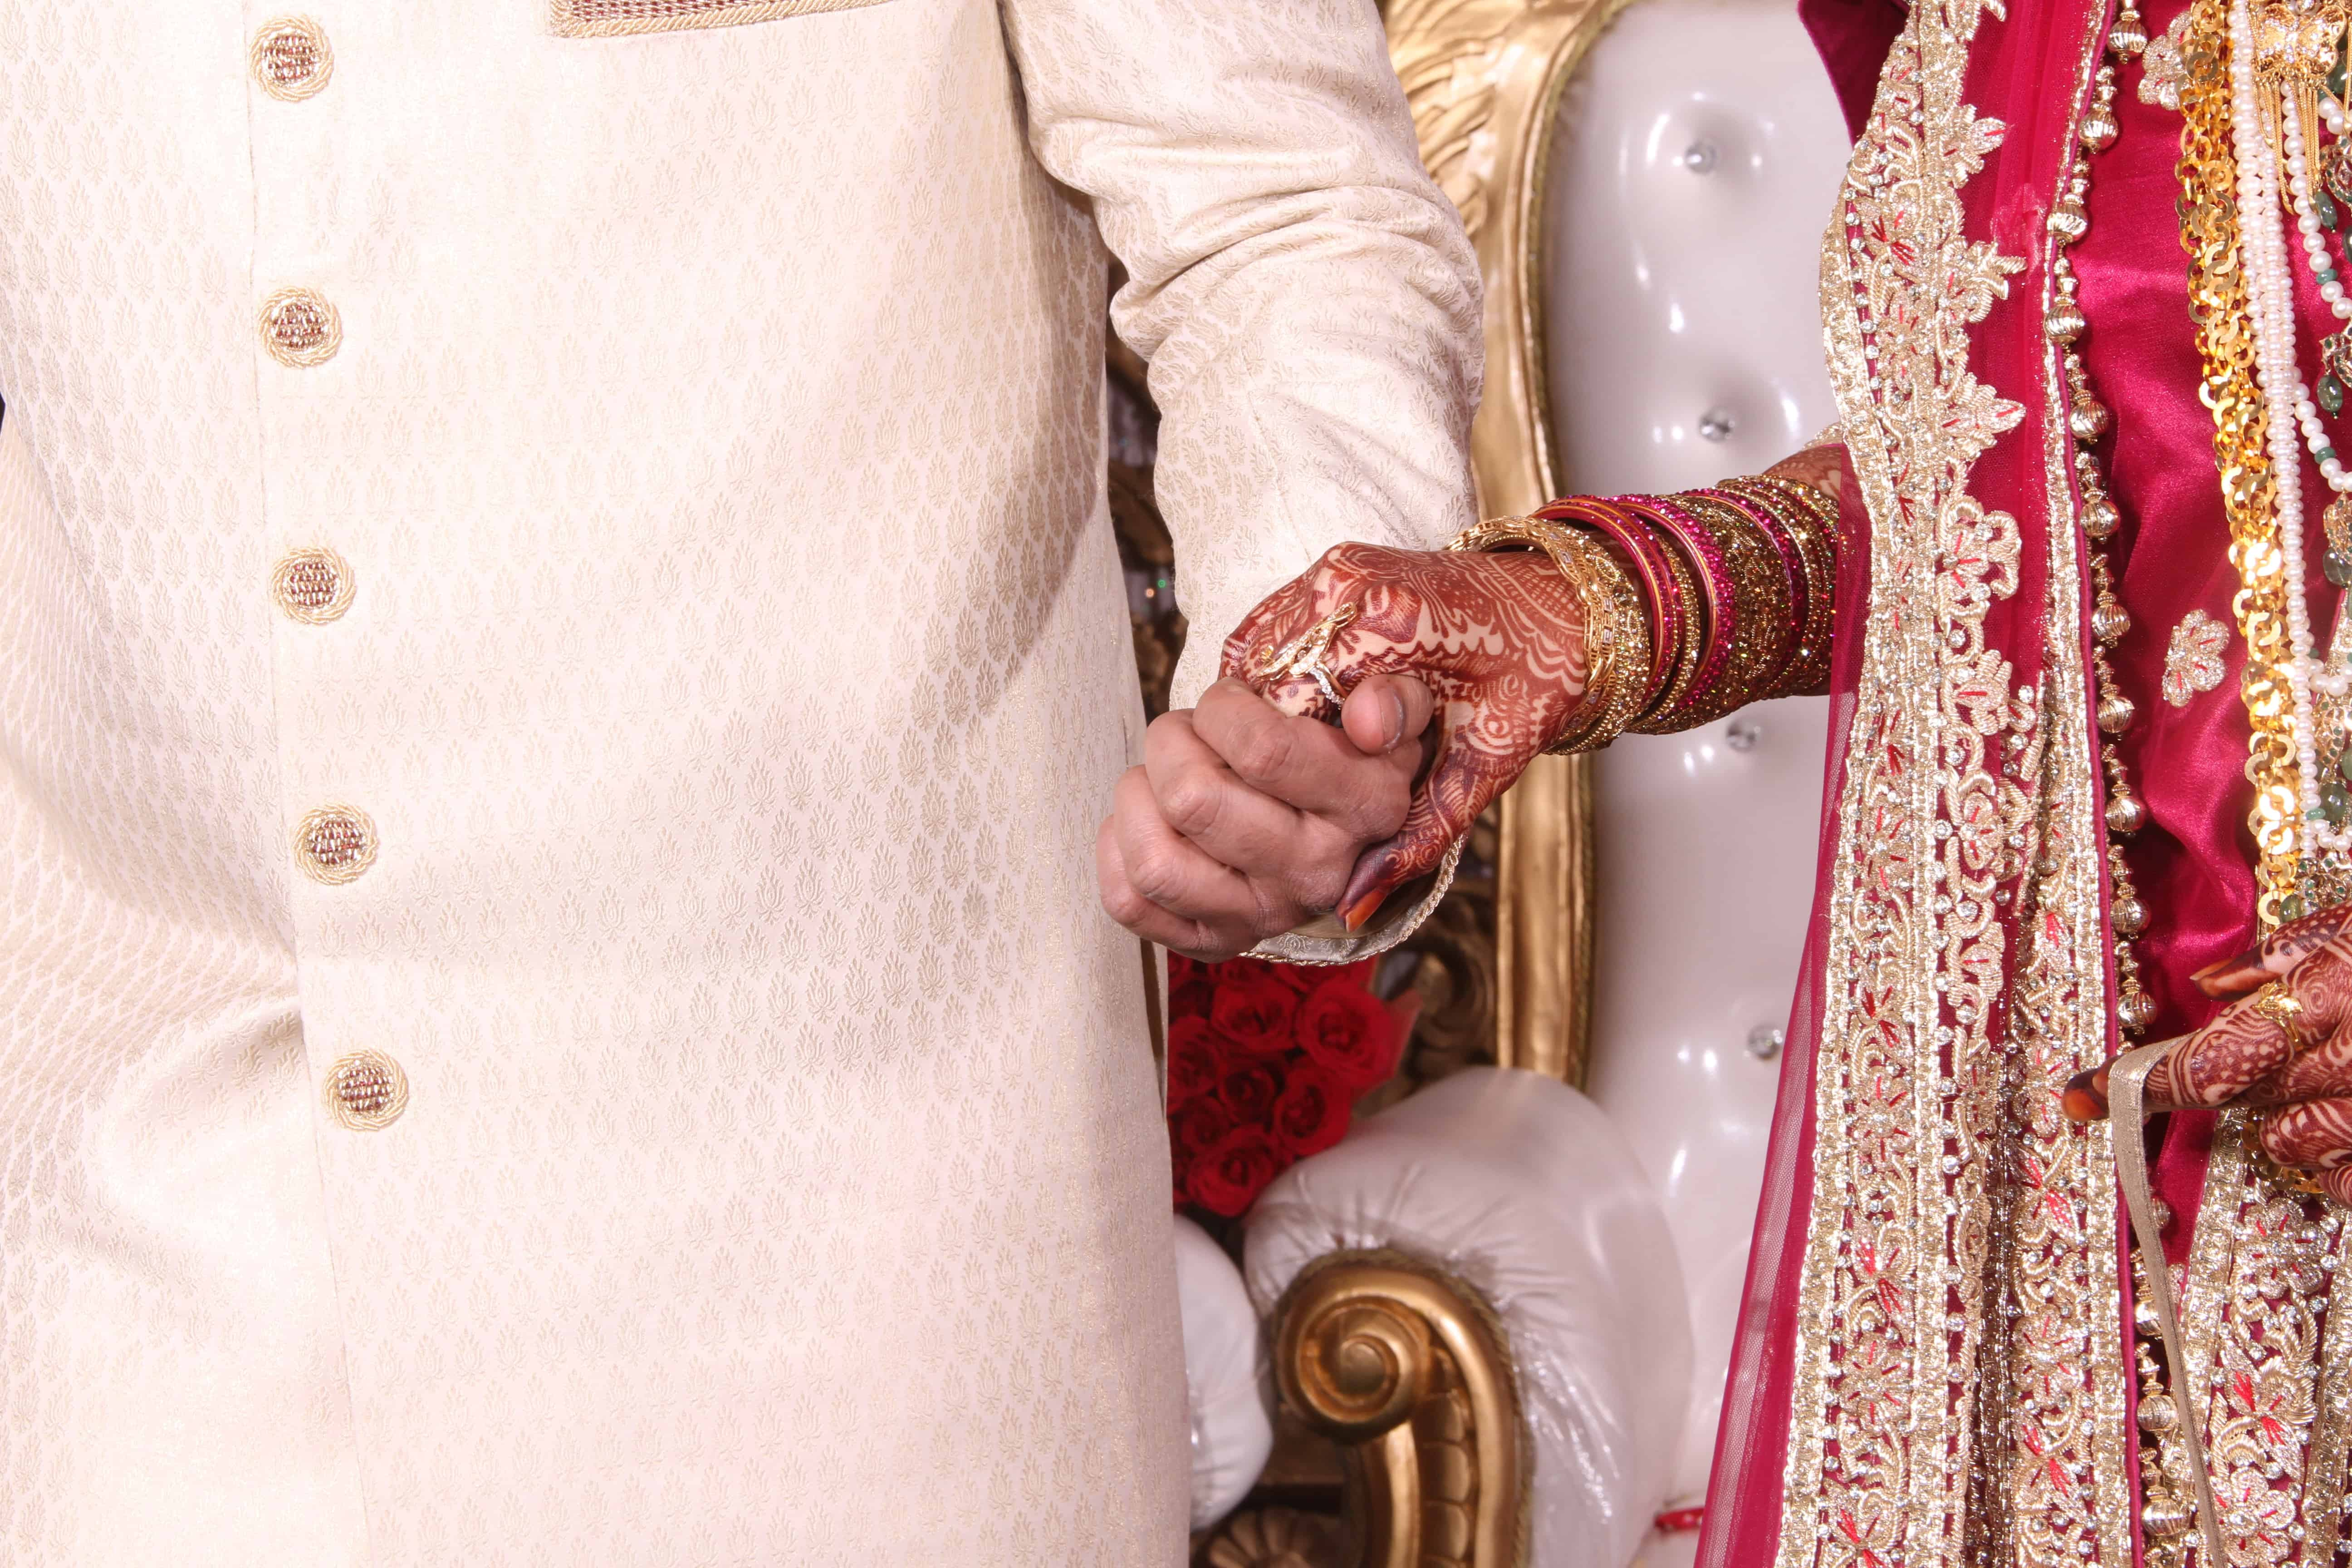 Indian wedding, India facts